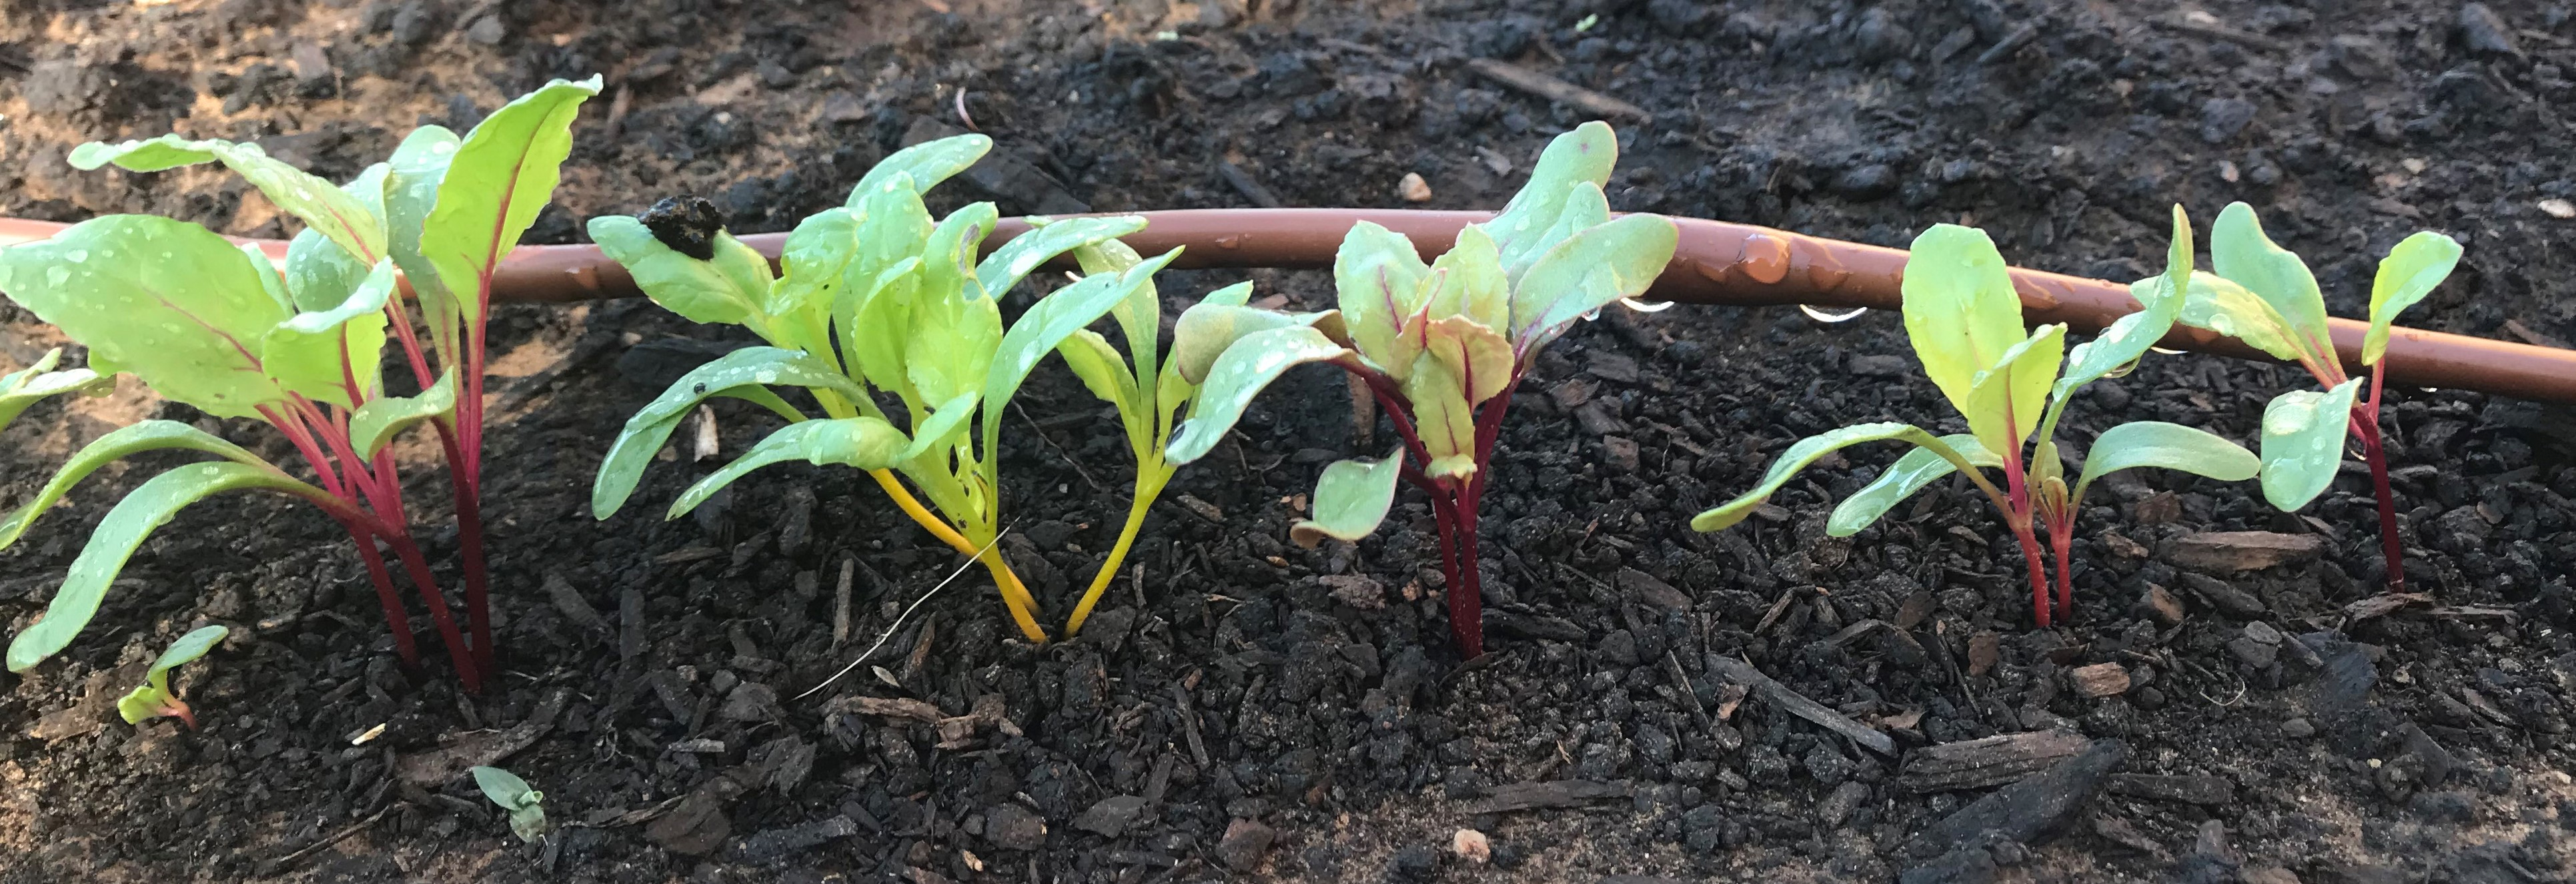 Cool seson seedlings emerge at Bodine Elementary School Garden - Beets!